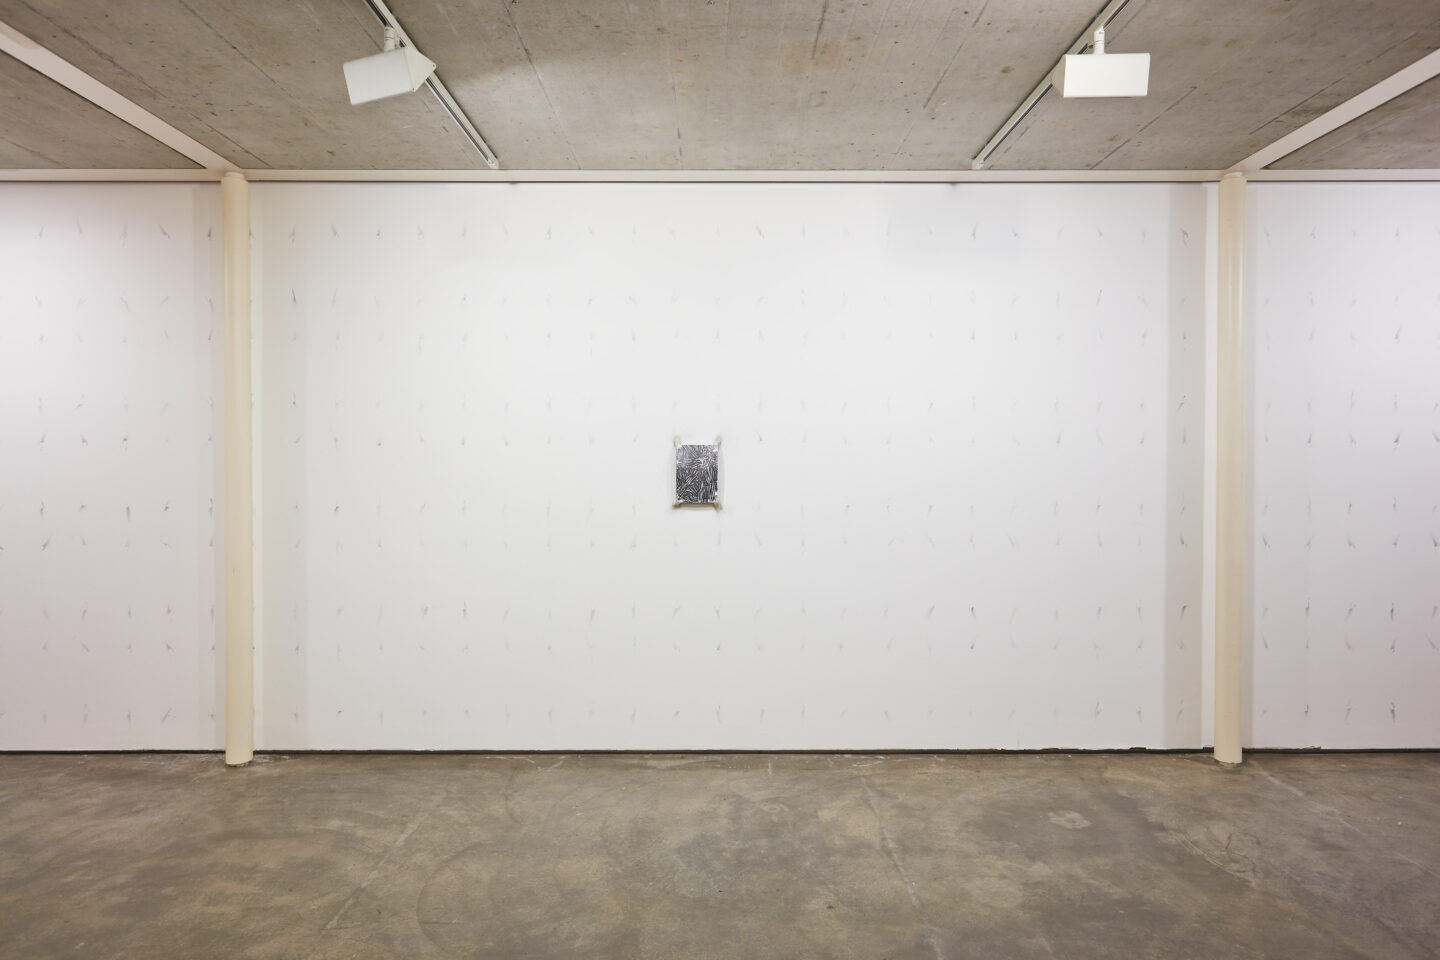 Exhibition View Groupshow «Motor; view on Samuli Blatter, Strange Attractor 13 (Daily Exorcism) batch of 120 drawings, traces on wall, graphite, paper, variable dimensions 2020» at Kunstraum Riehen, Riehen, Basel, 2020 / Photo: Moritz Schermbach / Courtesy: the artist